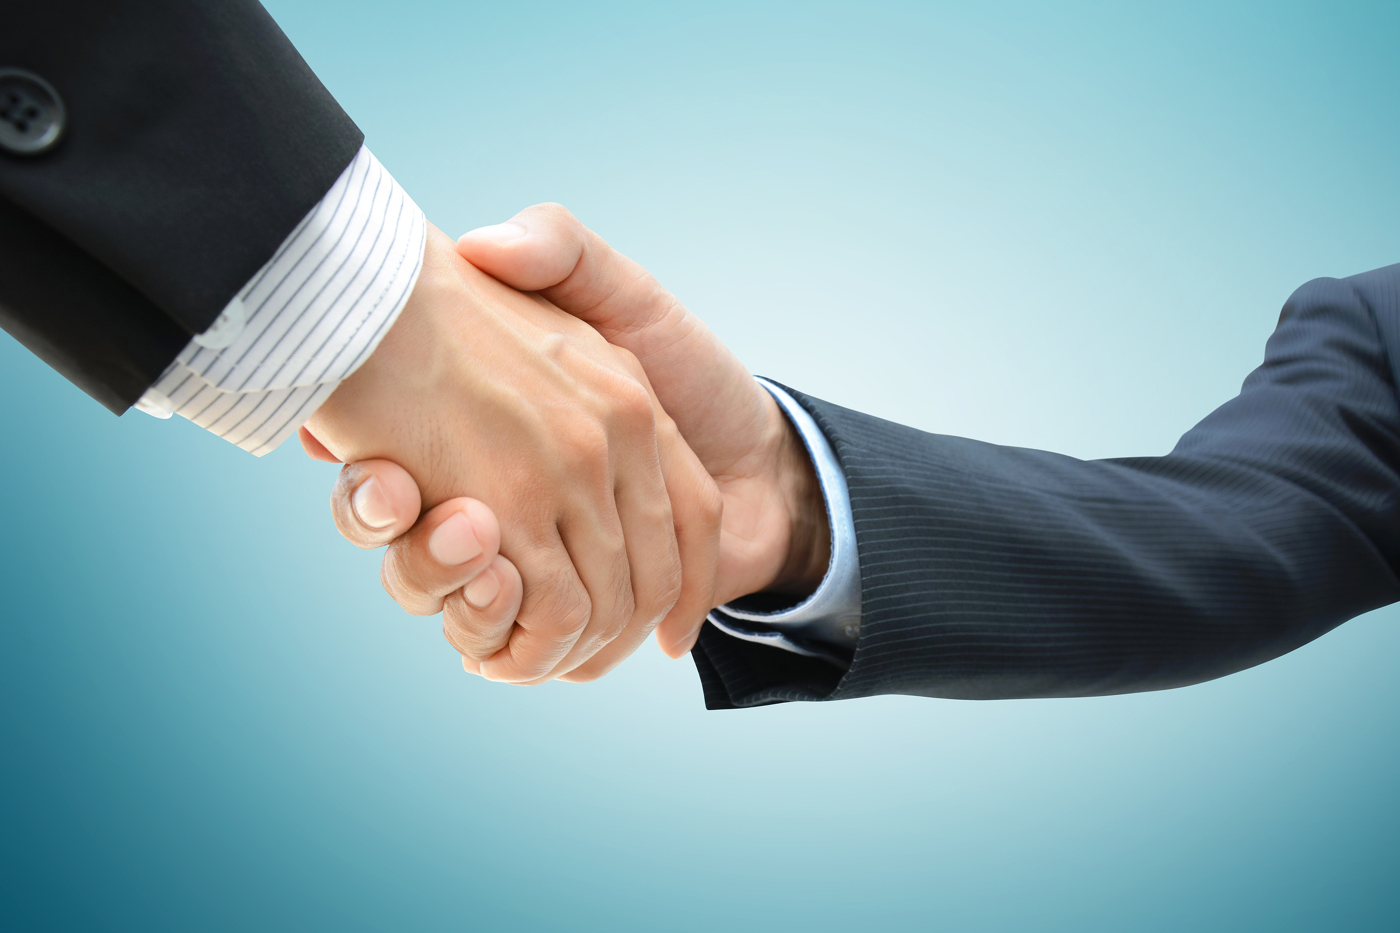 Acquisition, Merger, Stock-Moving Agreements, Mergers and Acquisitions